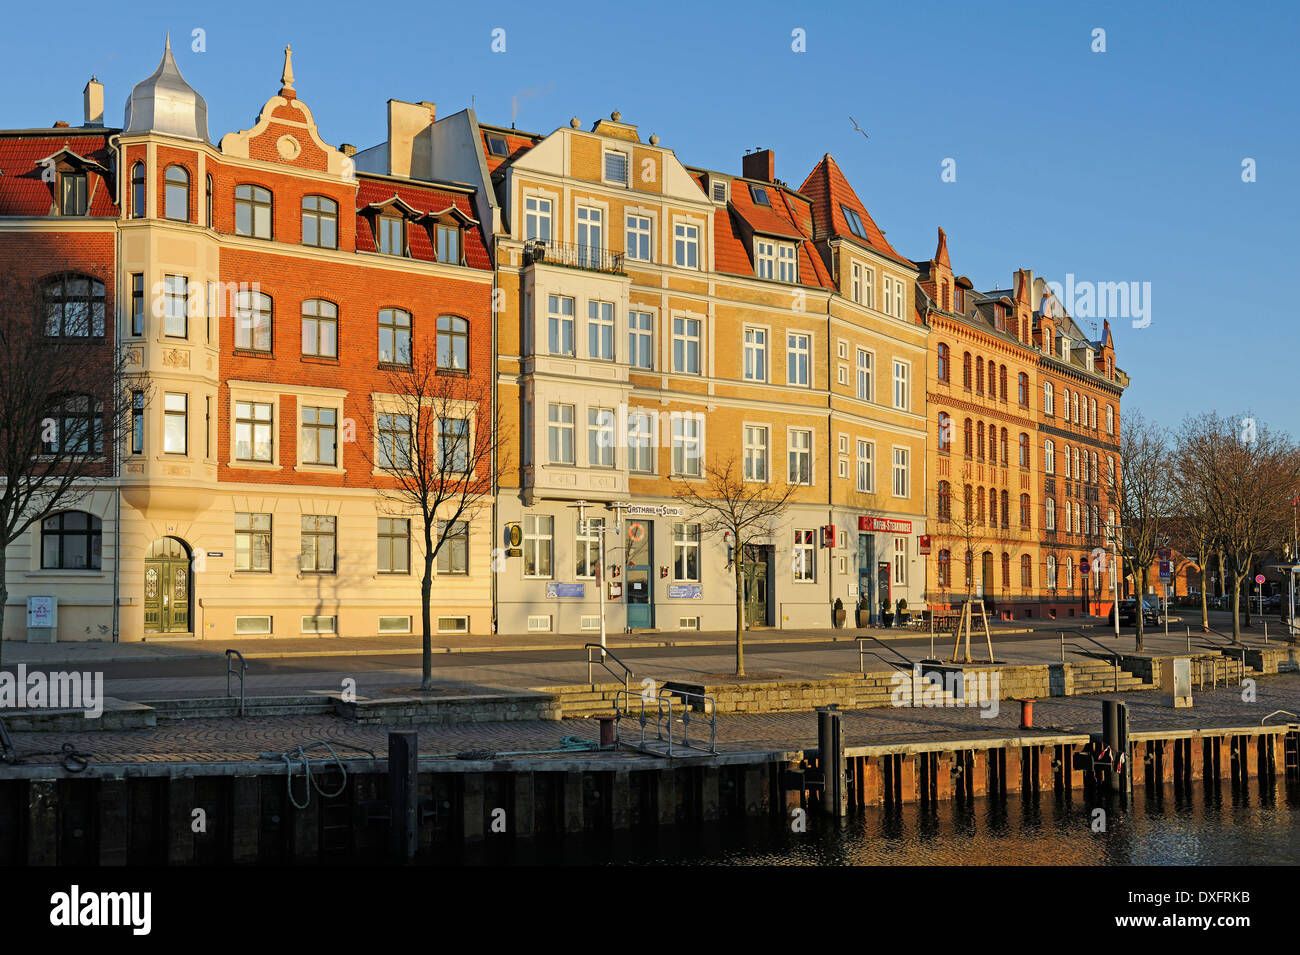 Brick buildings from the 19th Century, at old port, Hanseatic City of Stralsund, Mecklenburg-Western Pomerania, Stock Photo